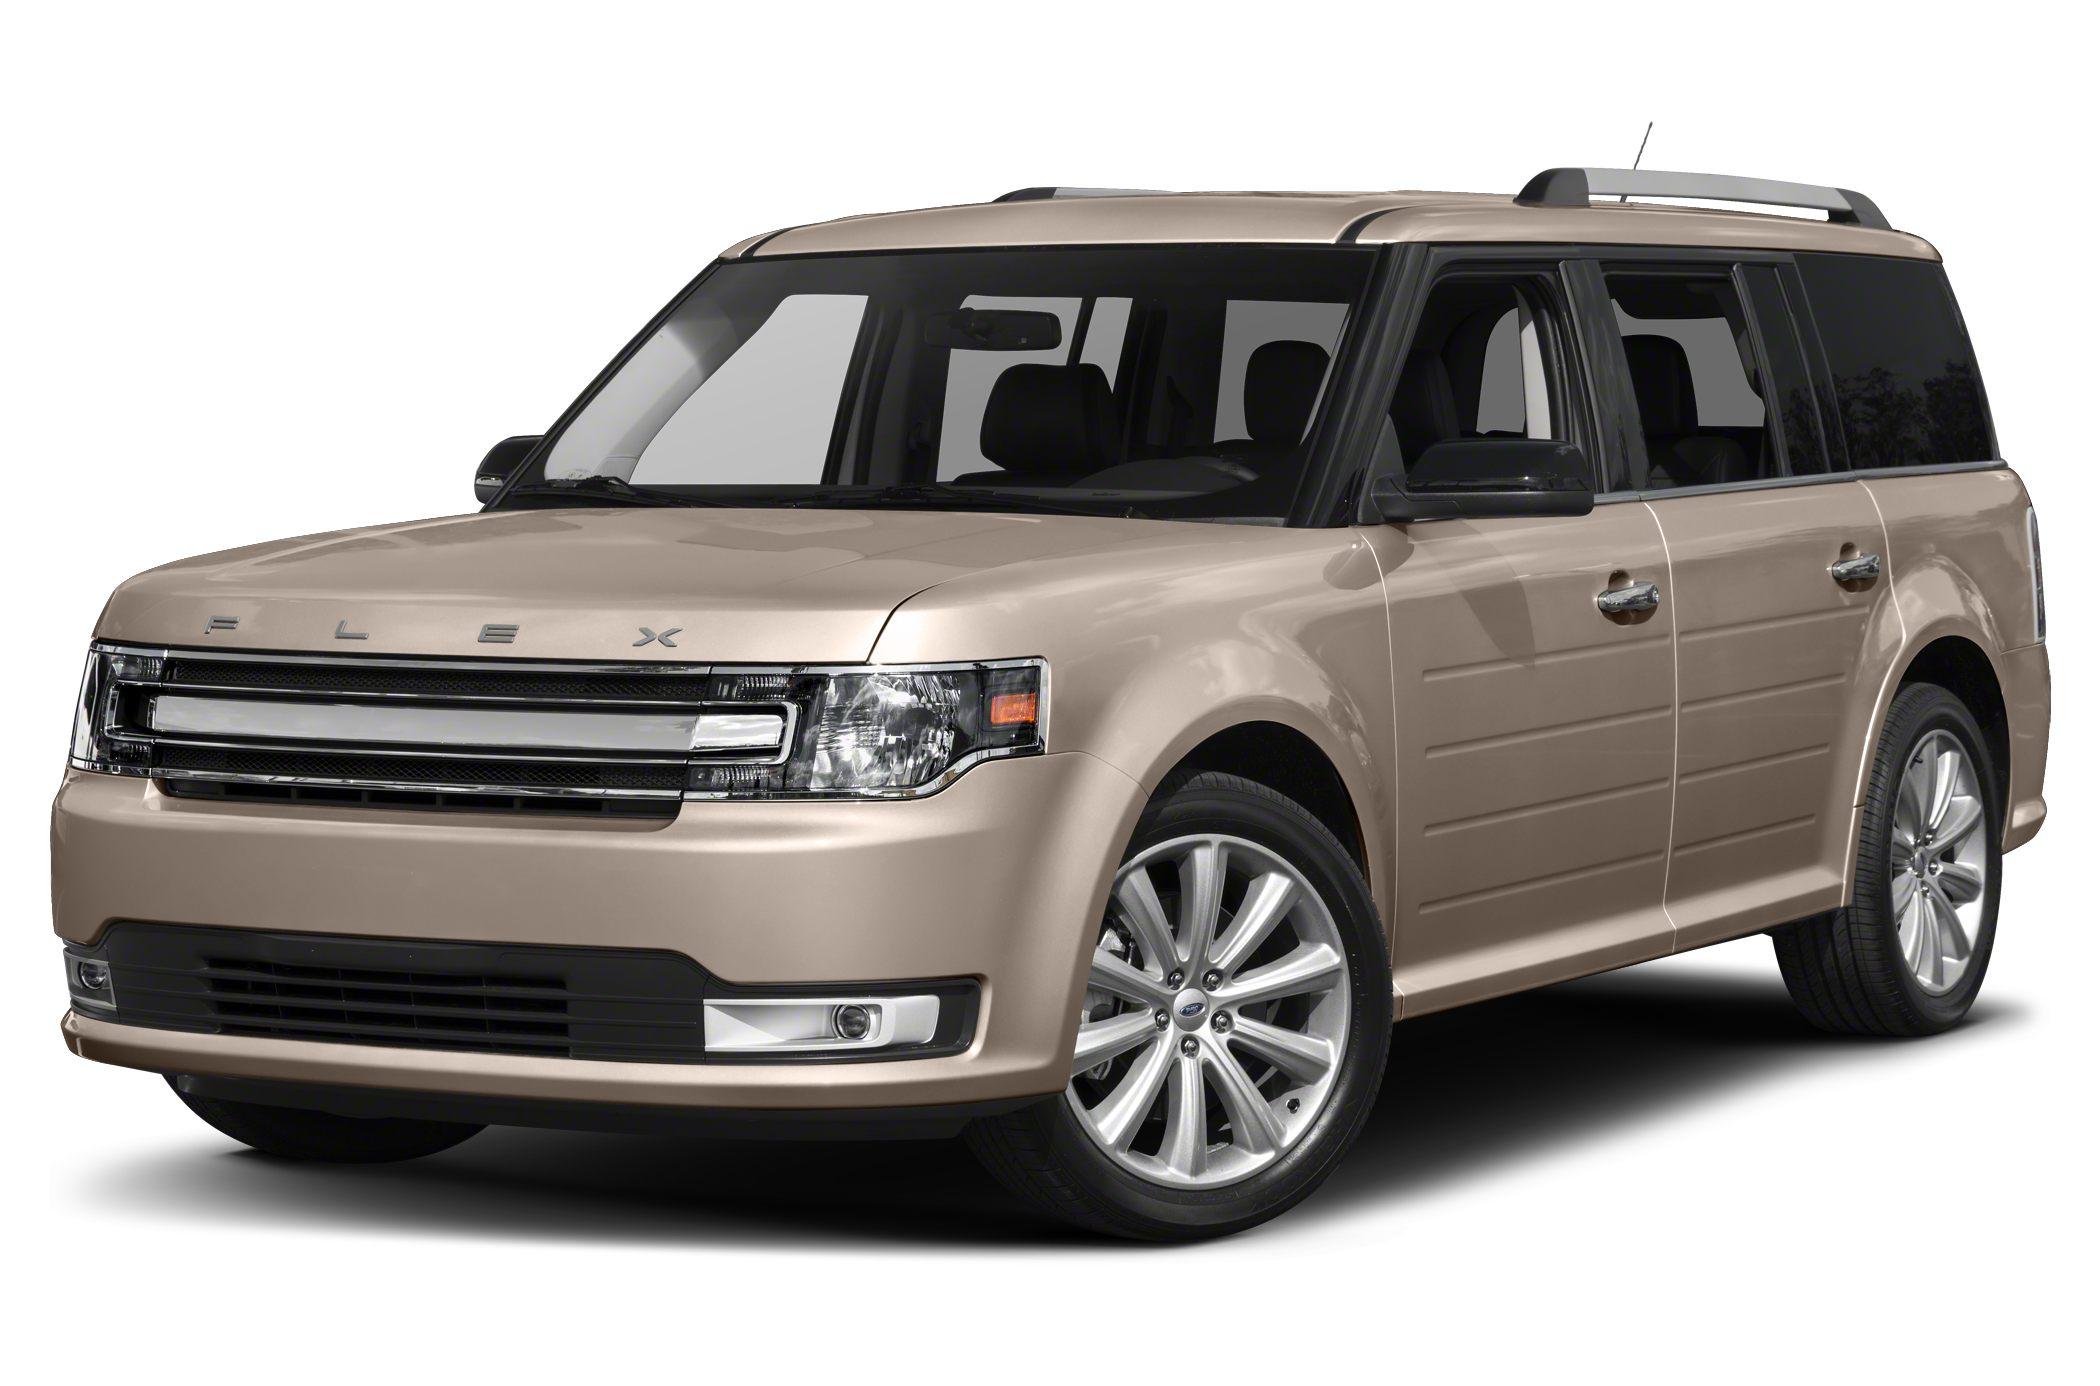 2018 Ford Flex Deals, Prices, Incentives & Leases, Overview - CarsDirect